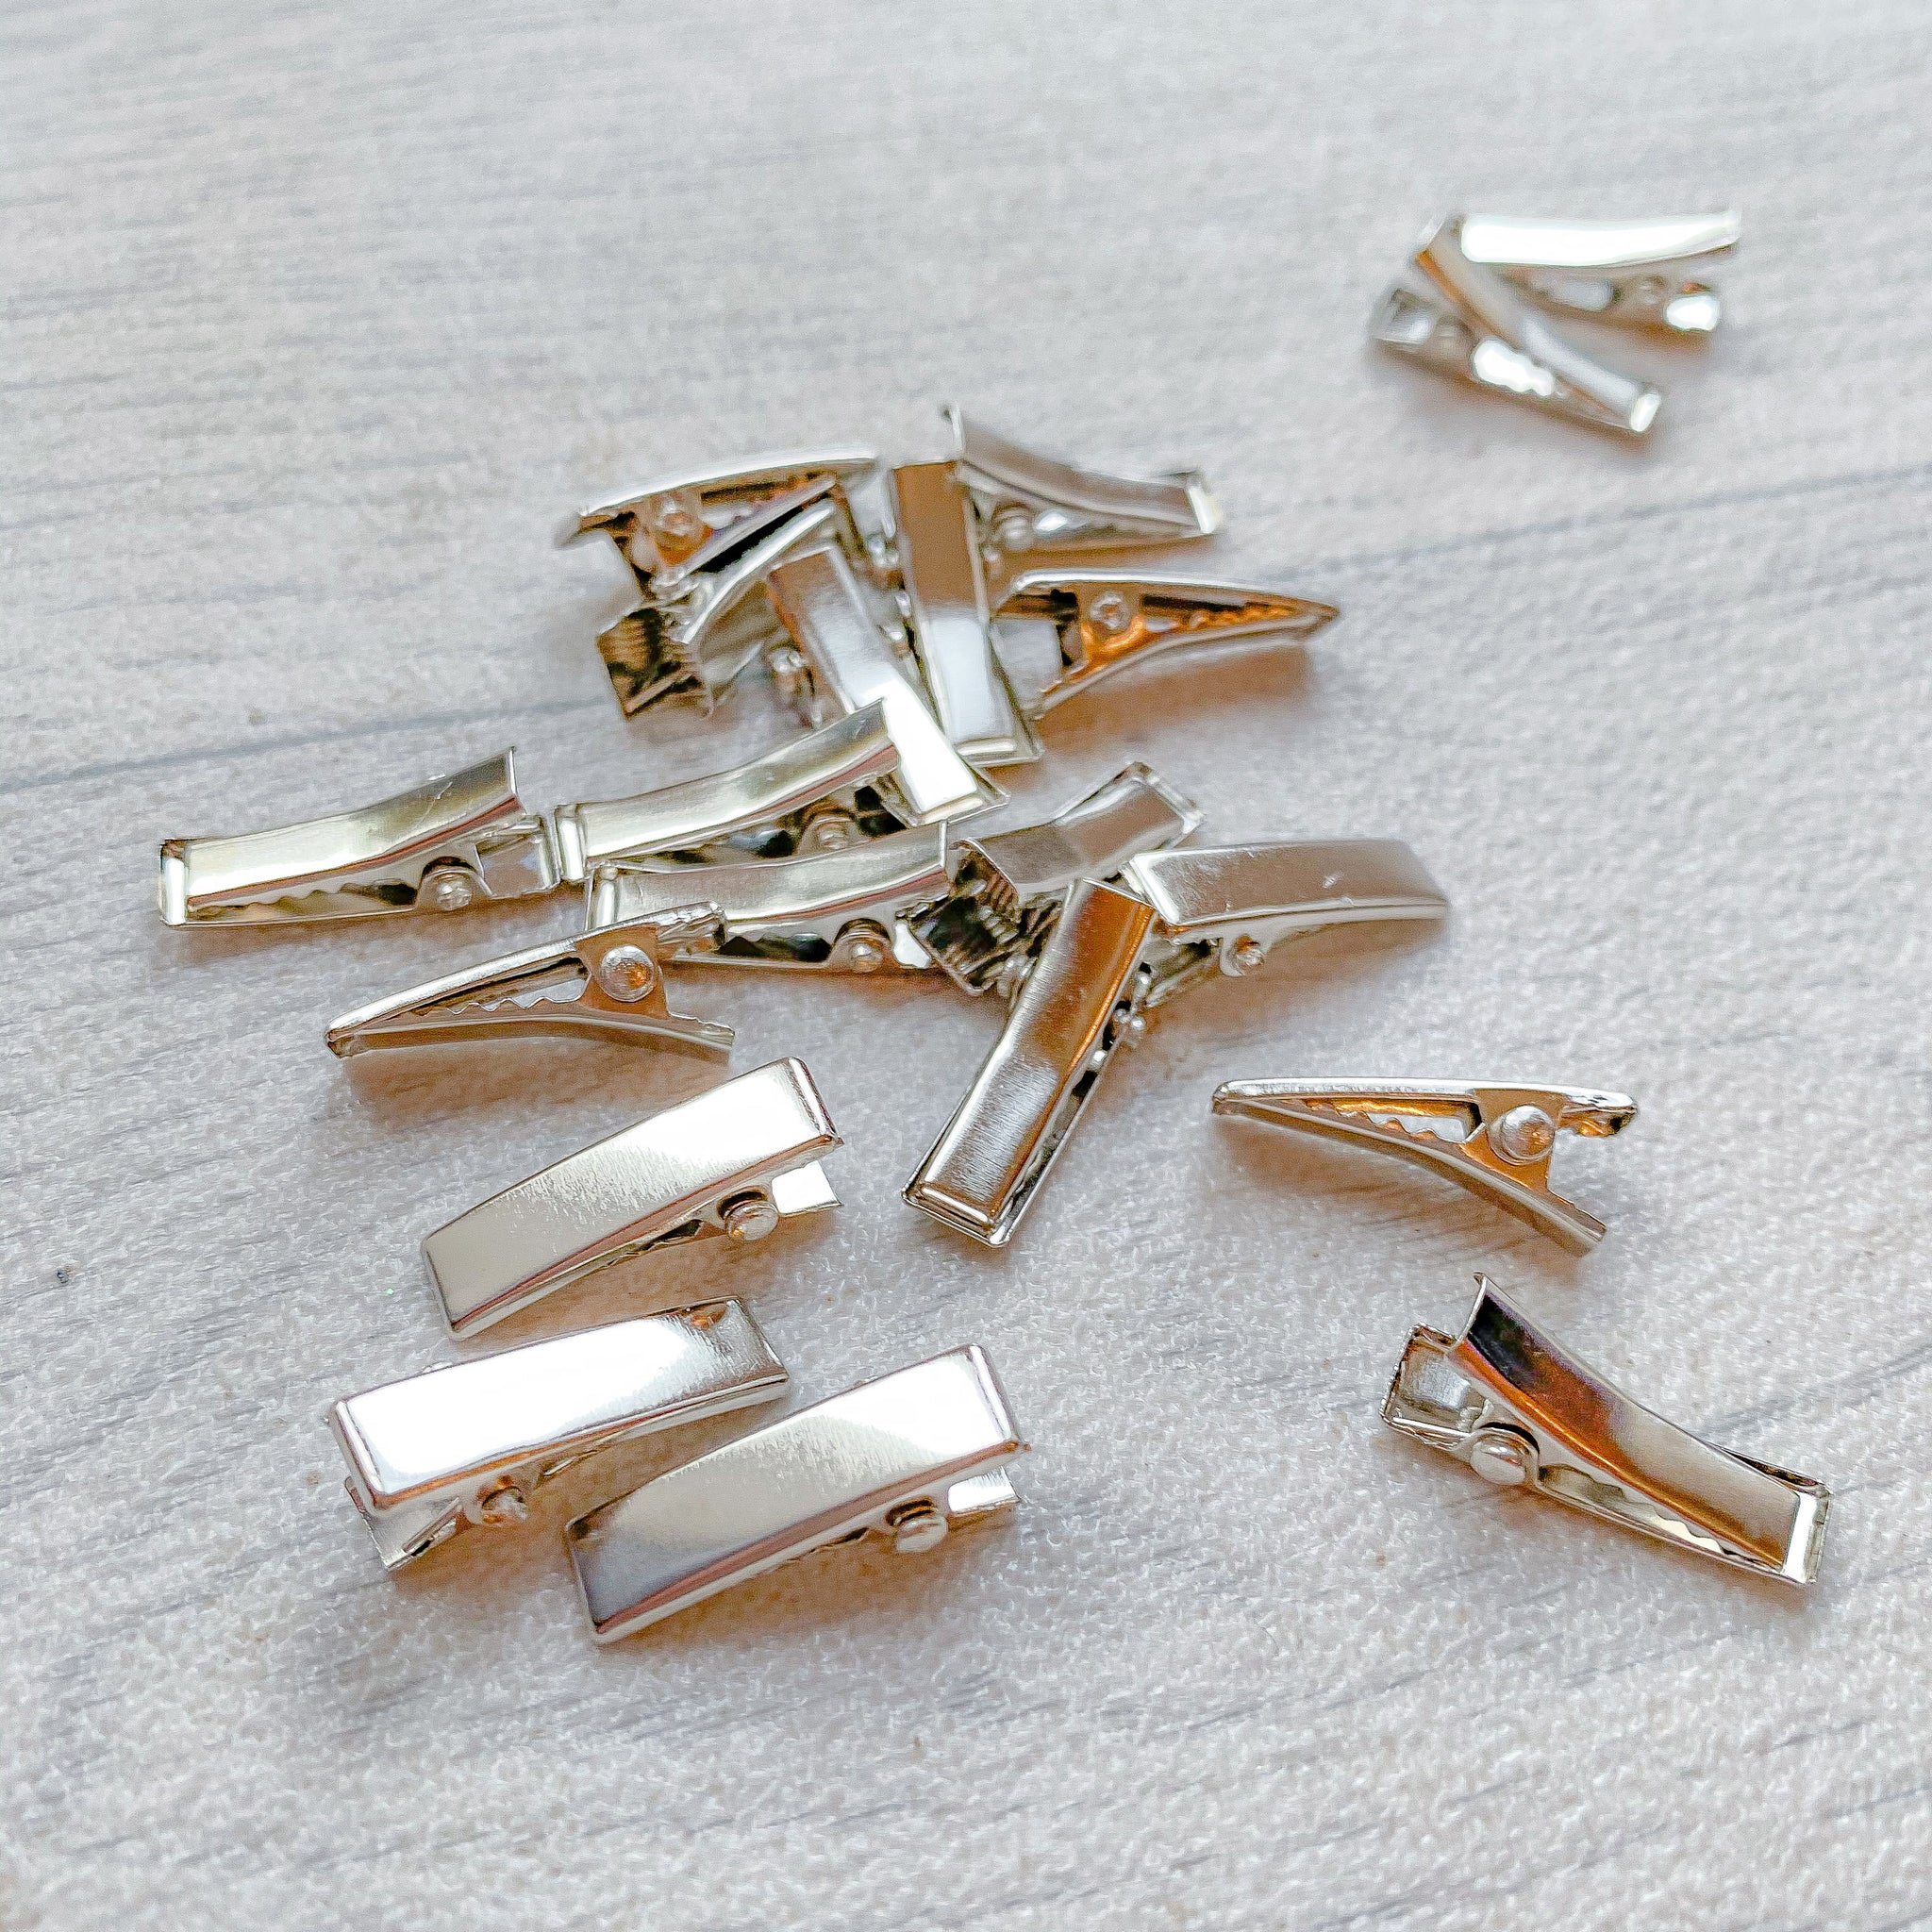 Silver Flat Alligator Clips 20 mm